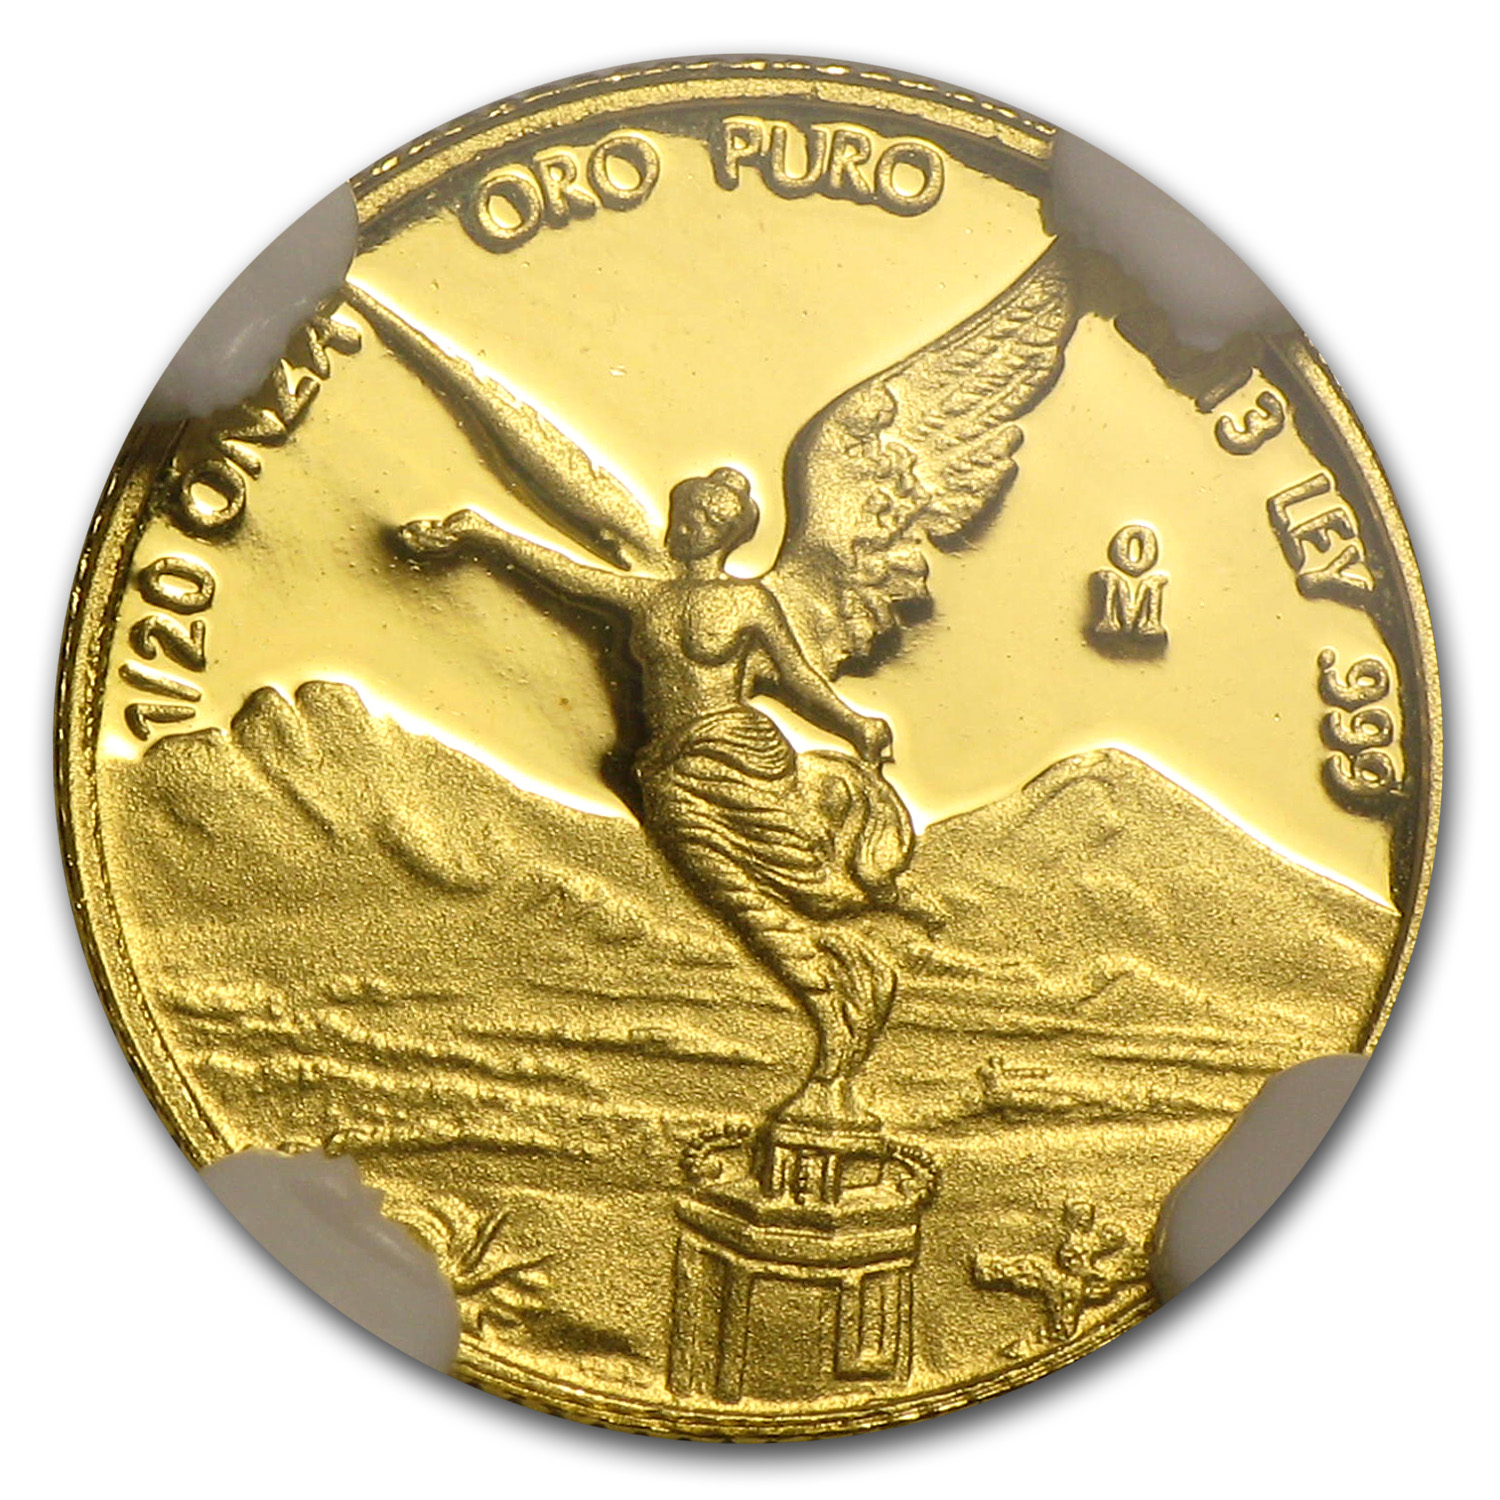 2013 Mexico 1/20 oz Gold Libertad PF-69 NGC